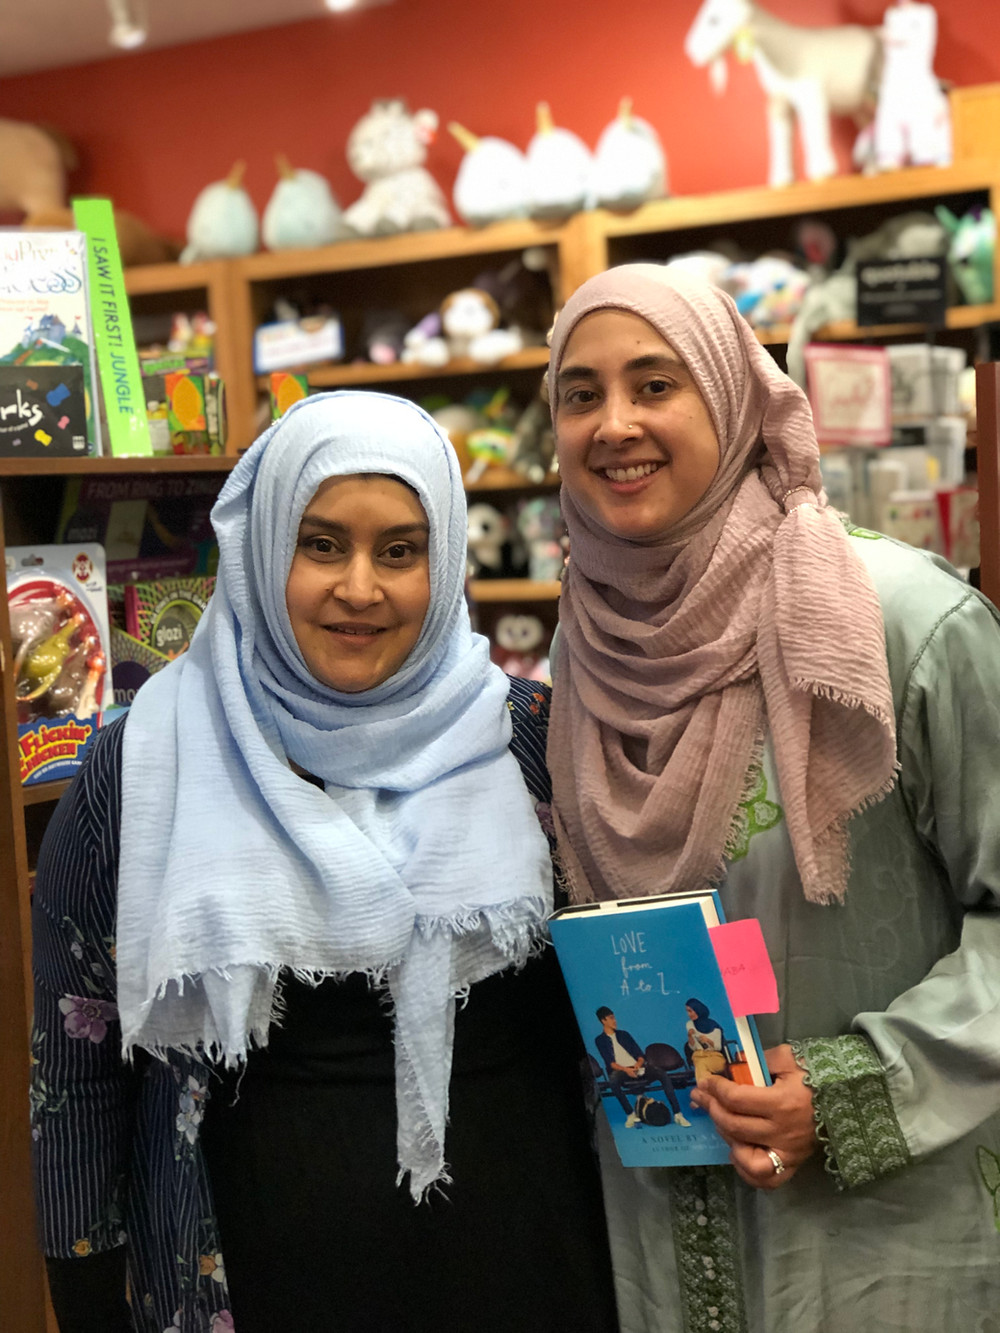 Tayyaba Syed with S.K. Ali at Anderson Bookshop